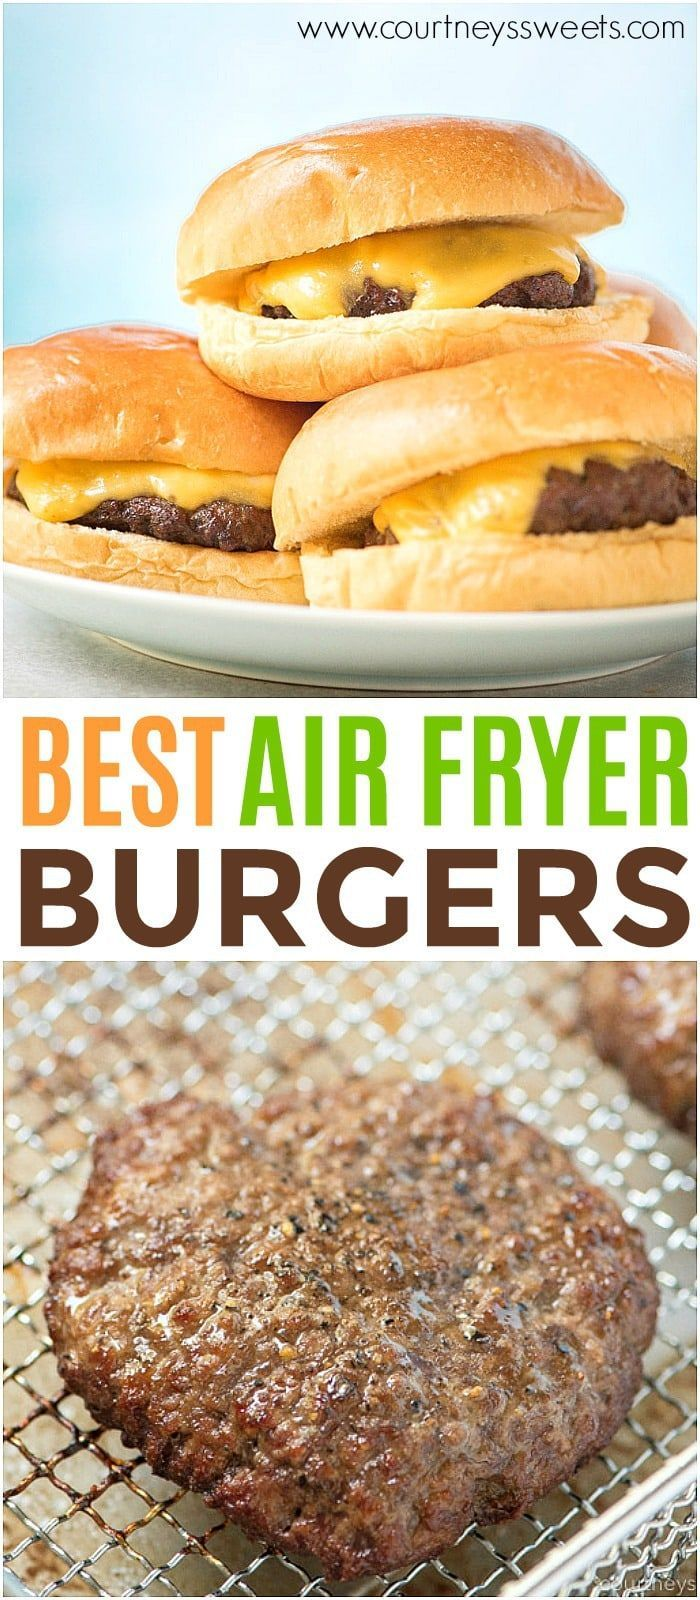 air fryer burgers recipe air fryer recipes burgers